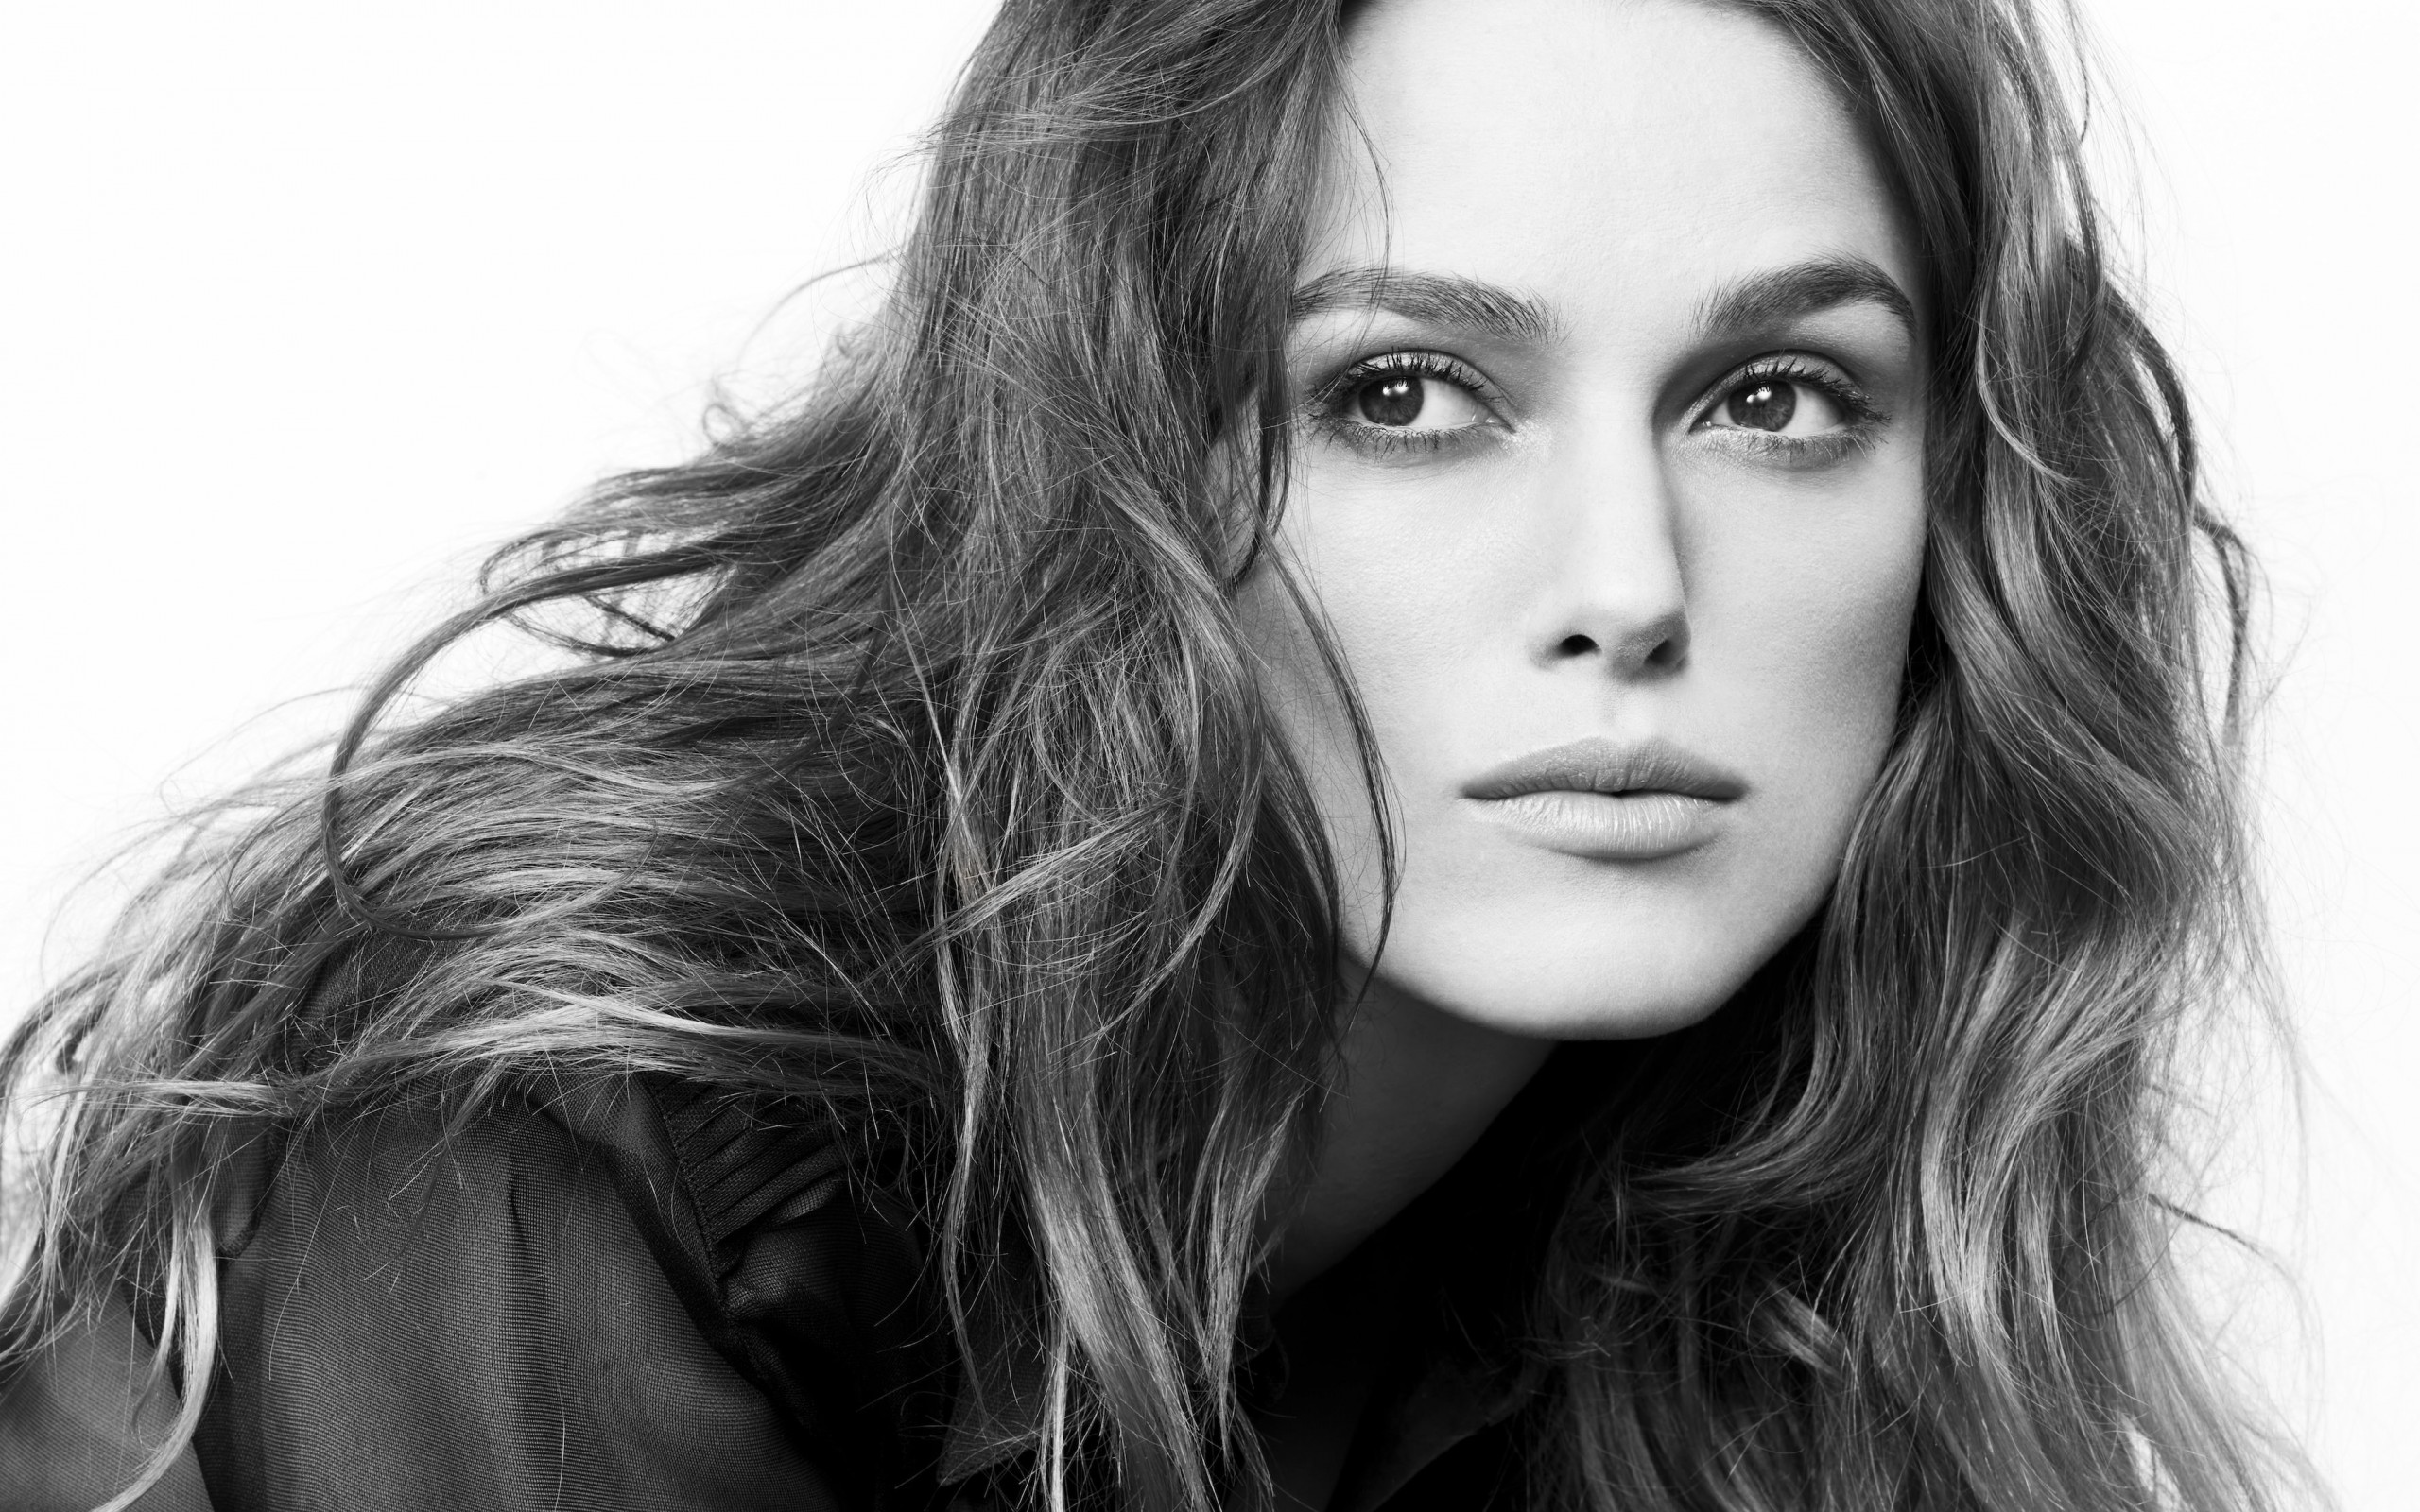 Keira Knightley in Black & White Wallpaper for Desktop 2560x1600